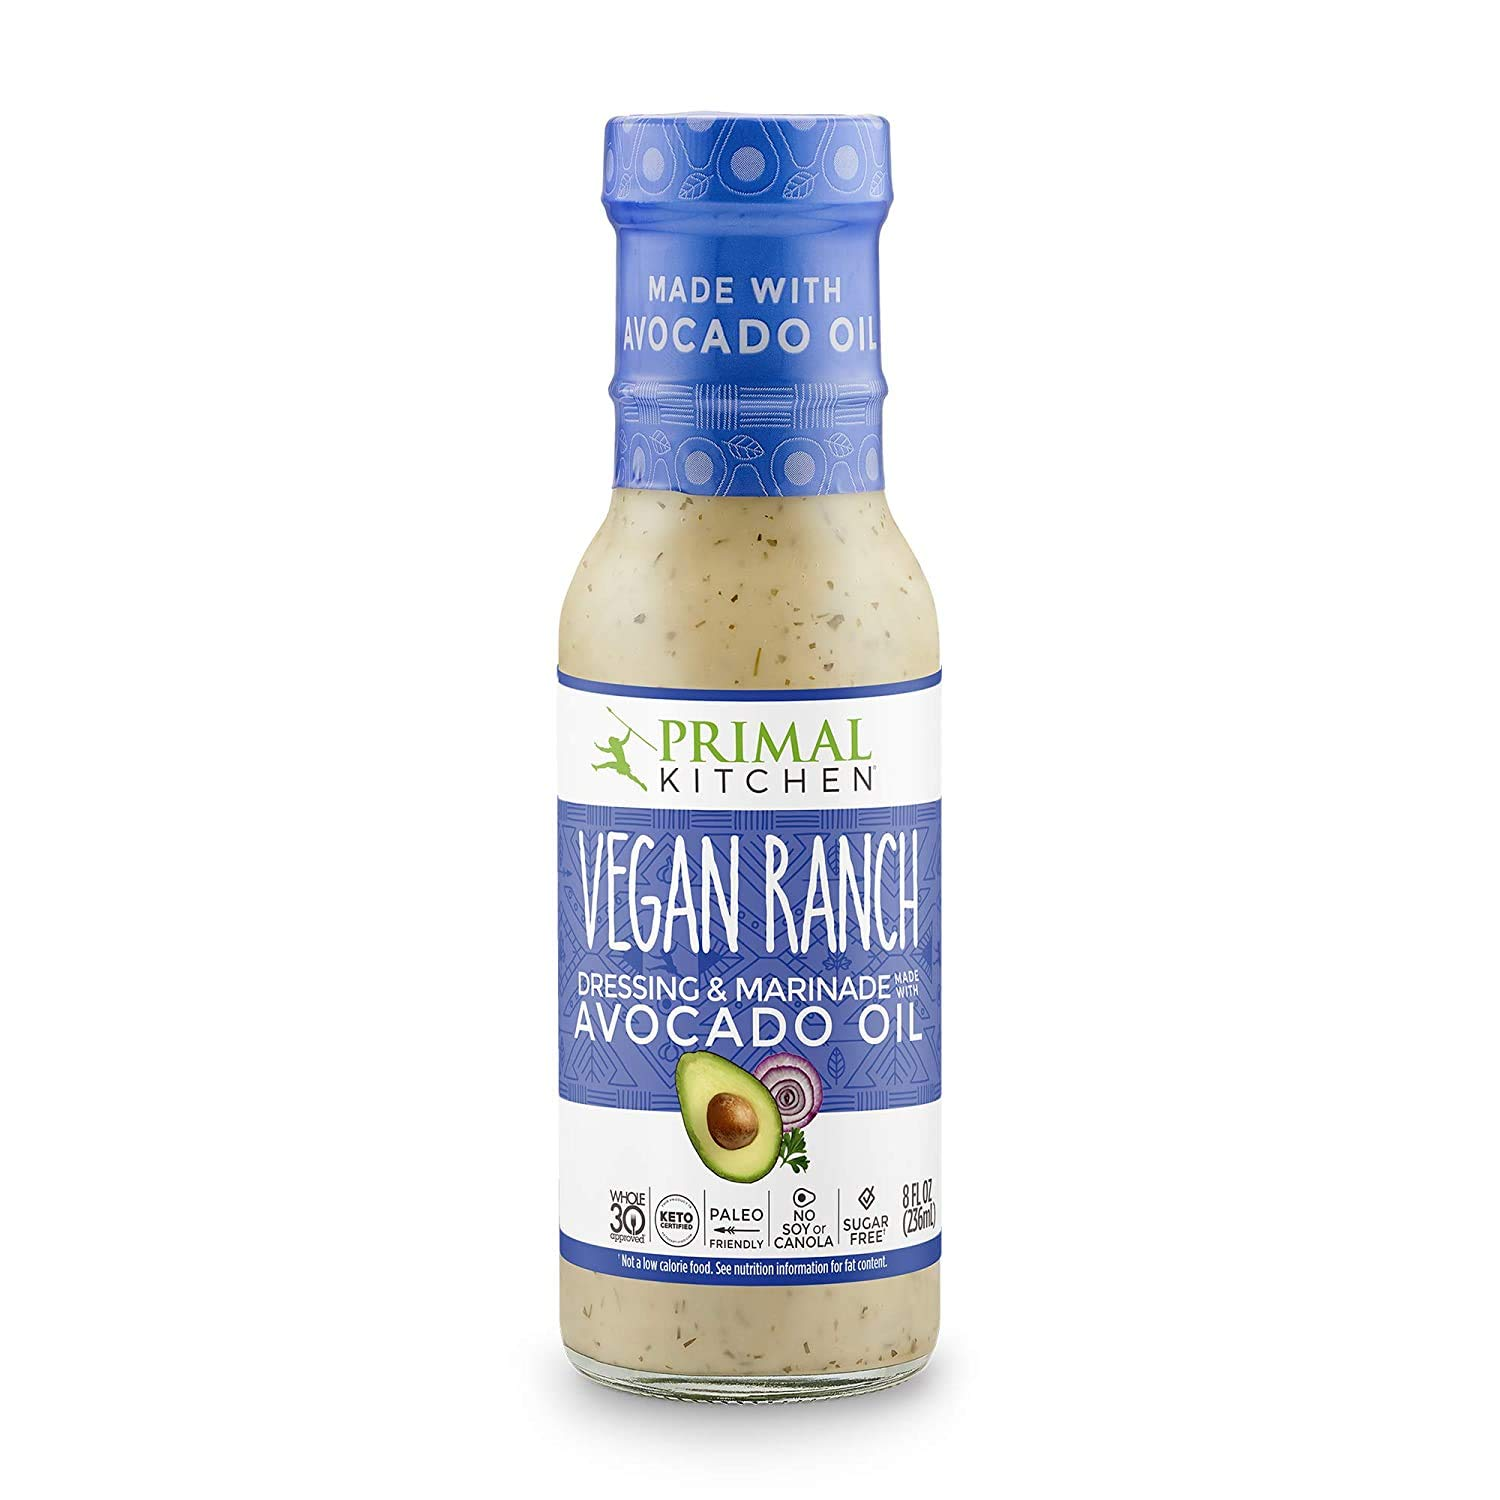 Amazon Com Primal Kitchen Avocado Oil Based Dressing And Marinade Vegan Ranch Pack Of 1 Whole30 And Paleo Approved Grocery Gourmet Food